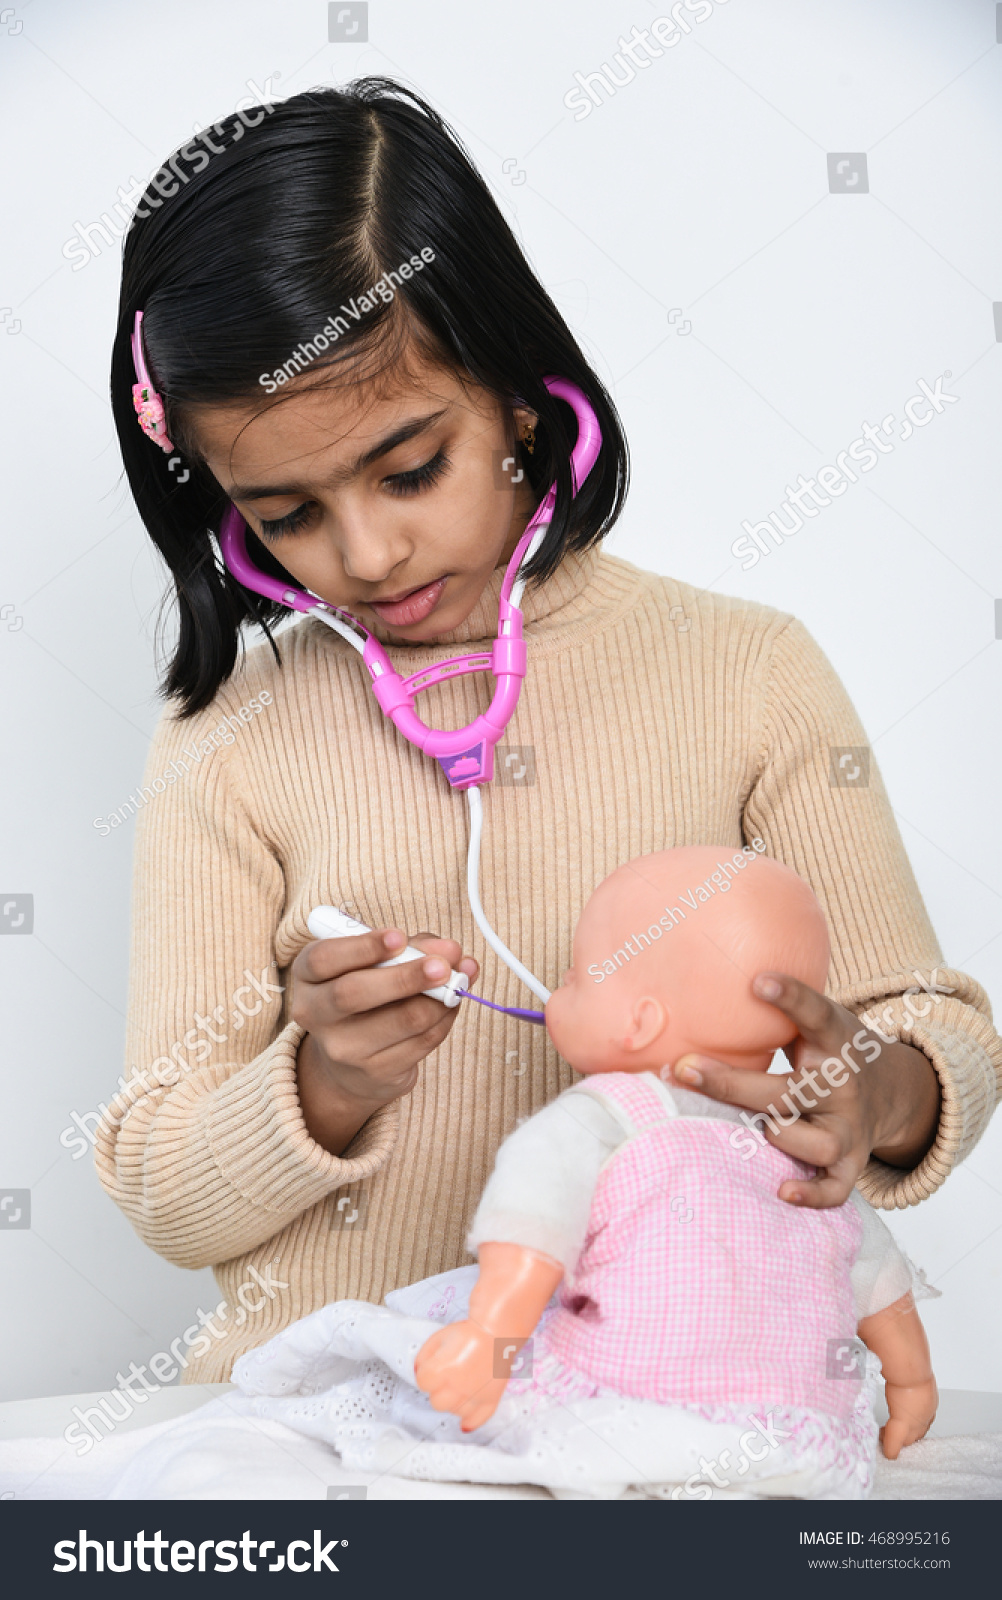 Cute young smiling happy indian girl kid playing with doctor set examining patient baby